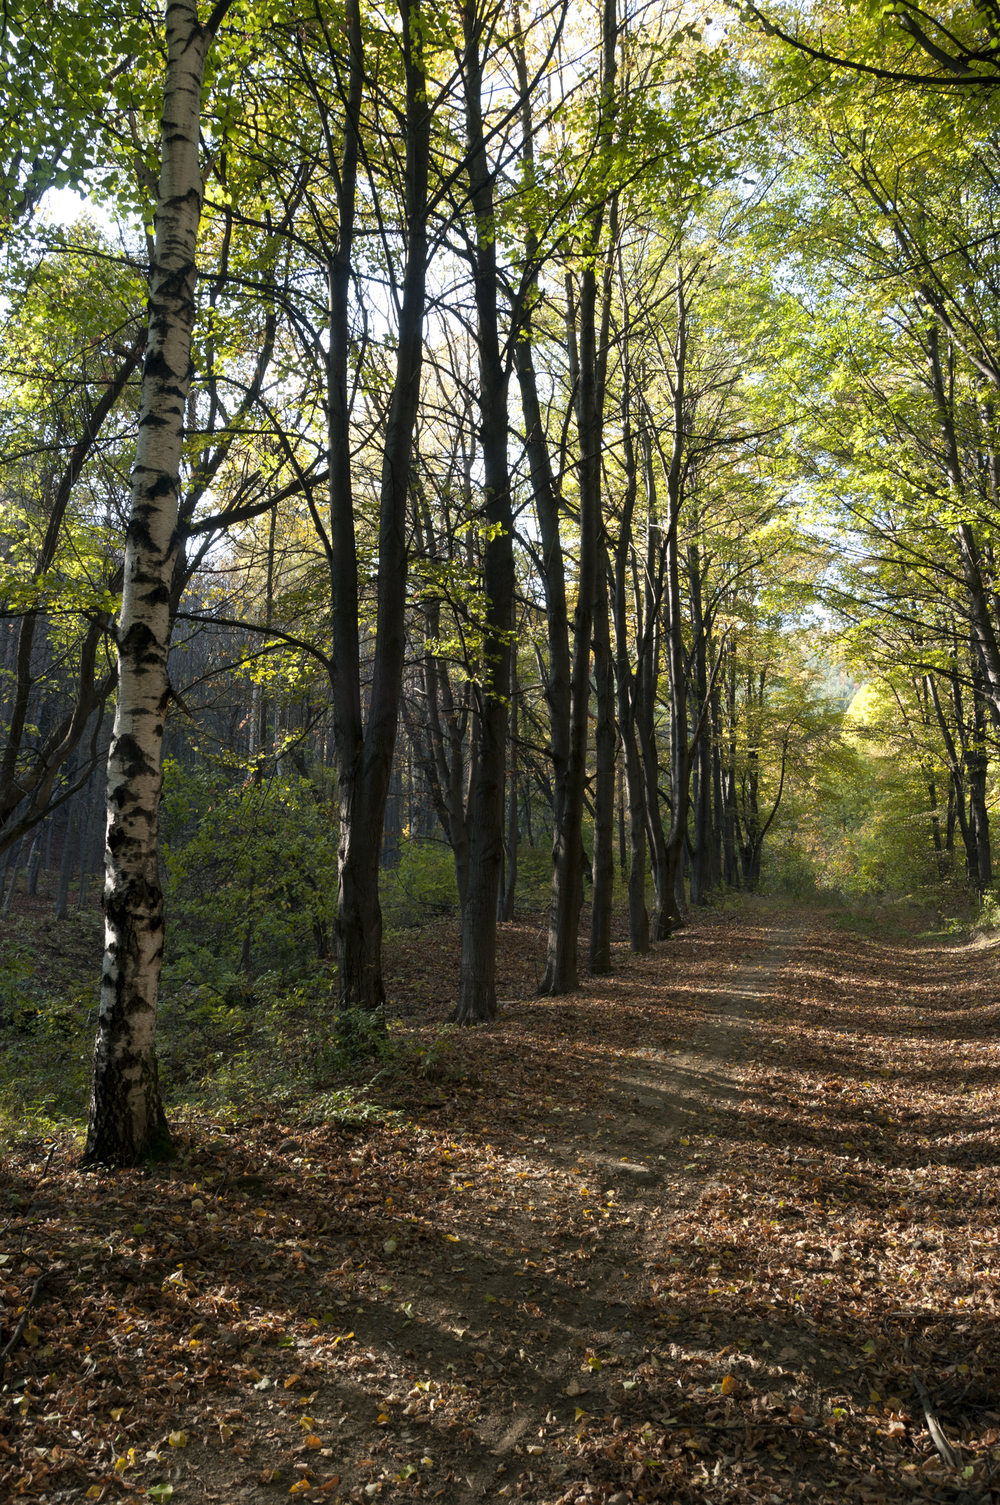 http://www.dreamstime.com/royalty-free-stock-photos-path-woods-image21927958